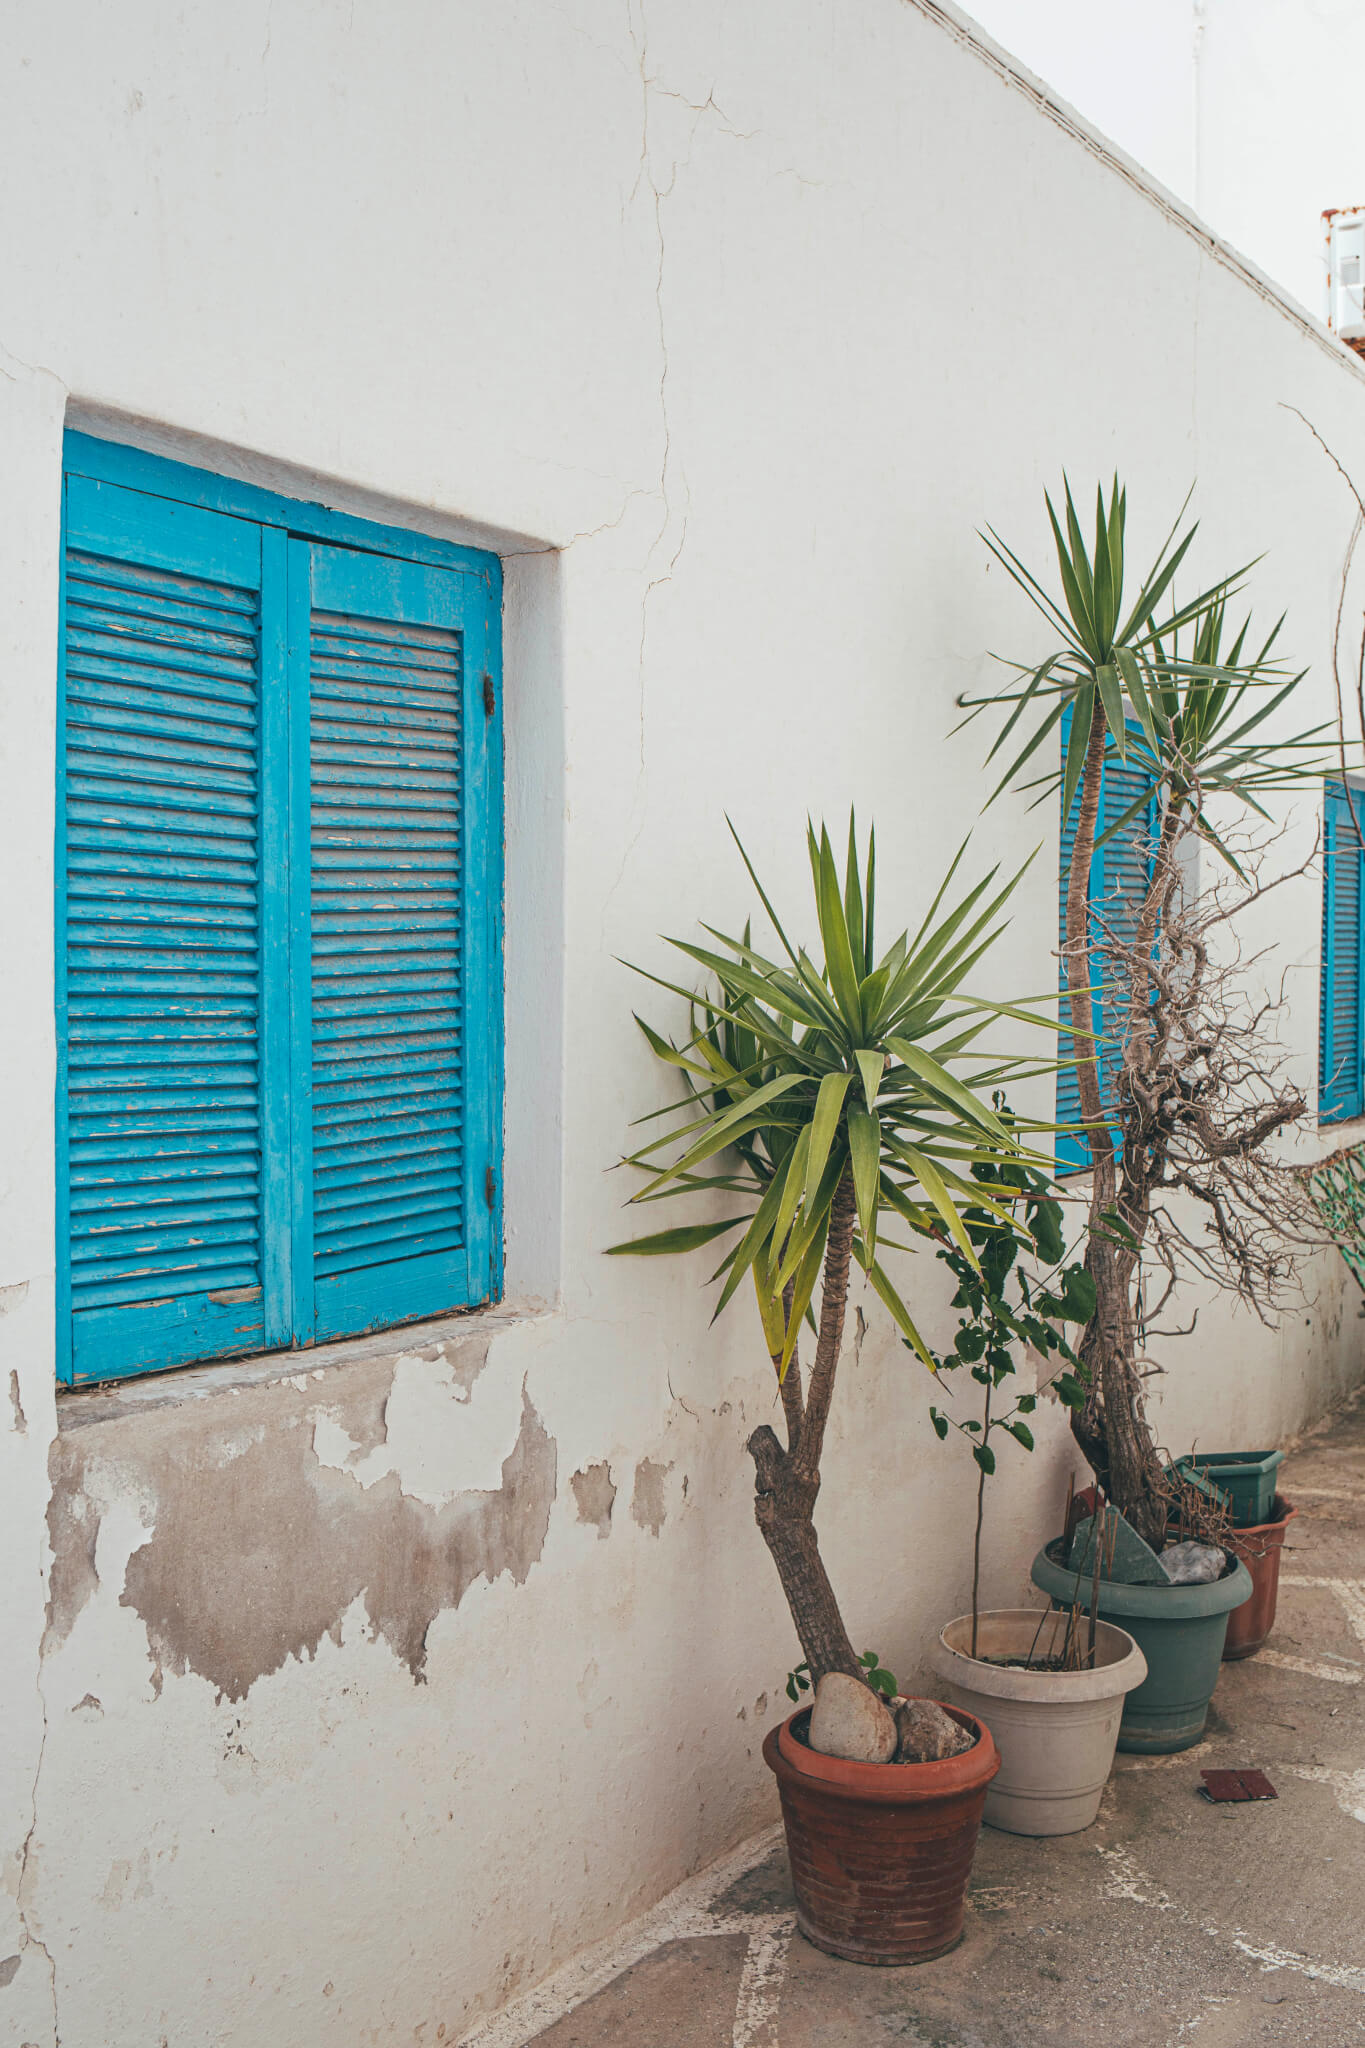 Holidays in Naxos - Where to Stay